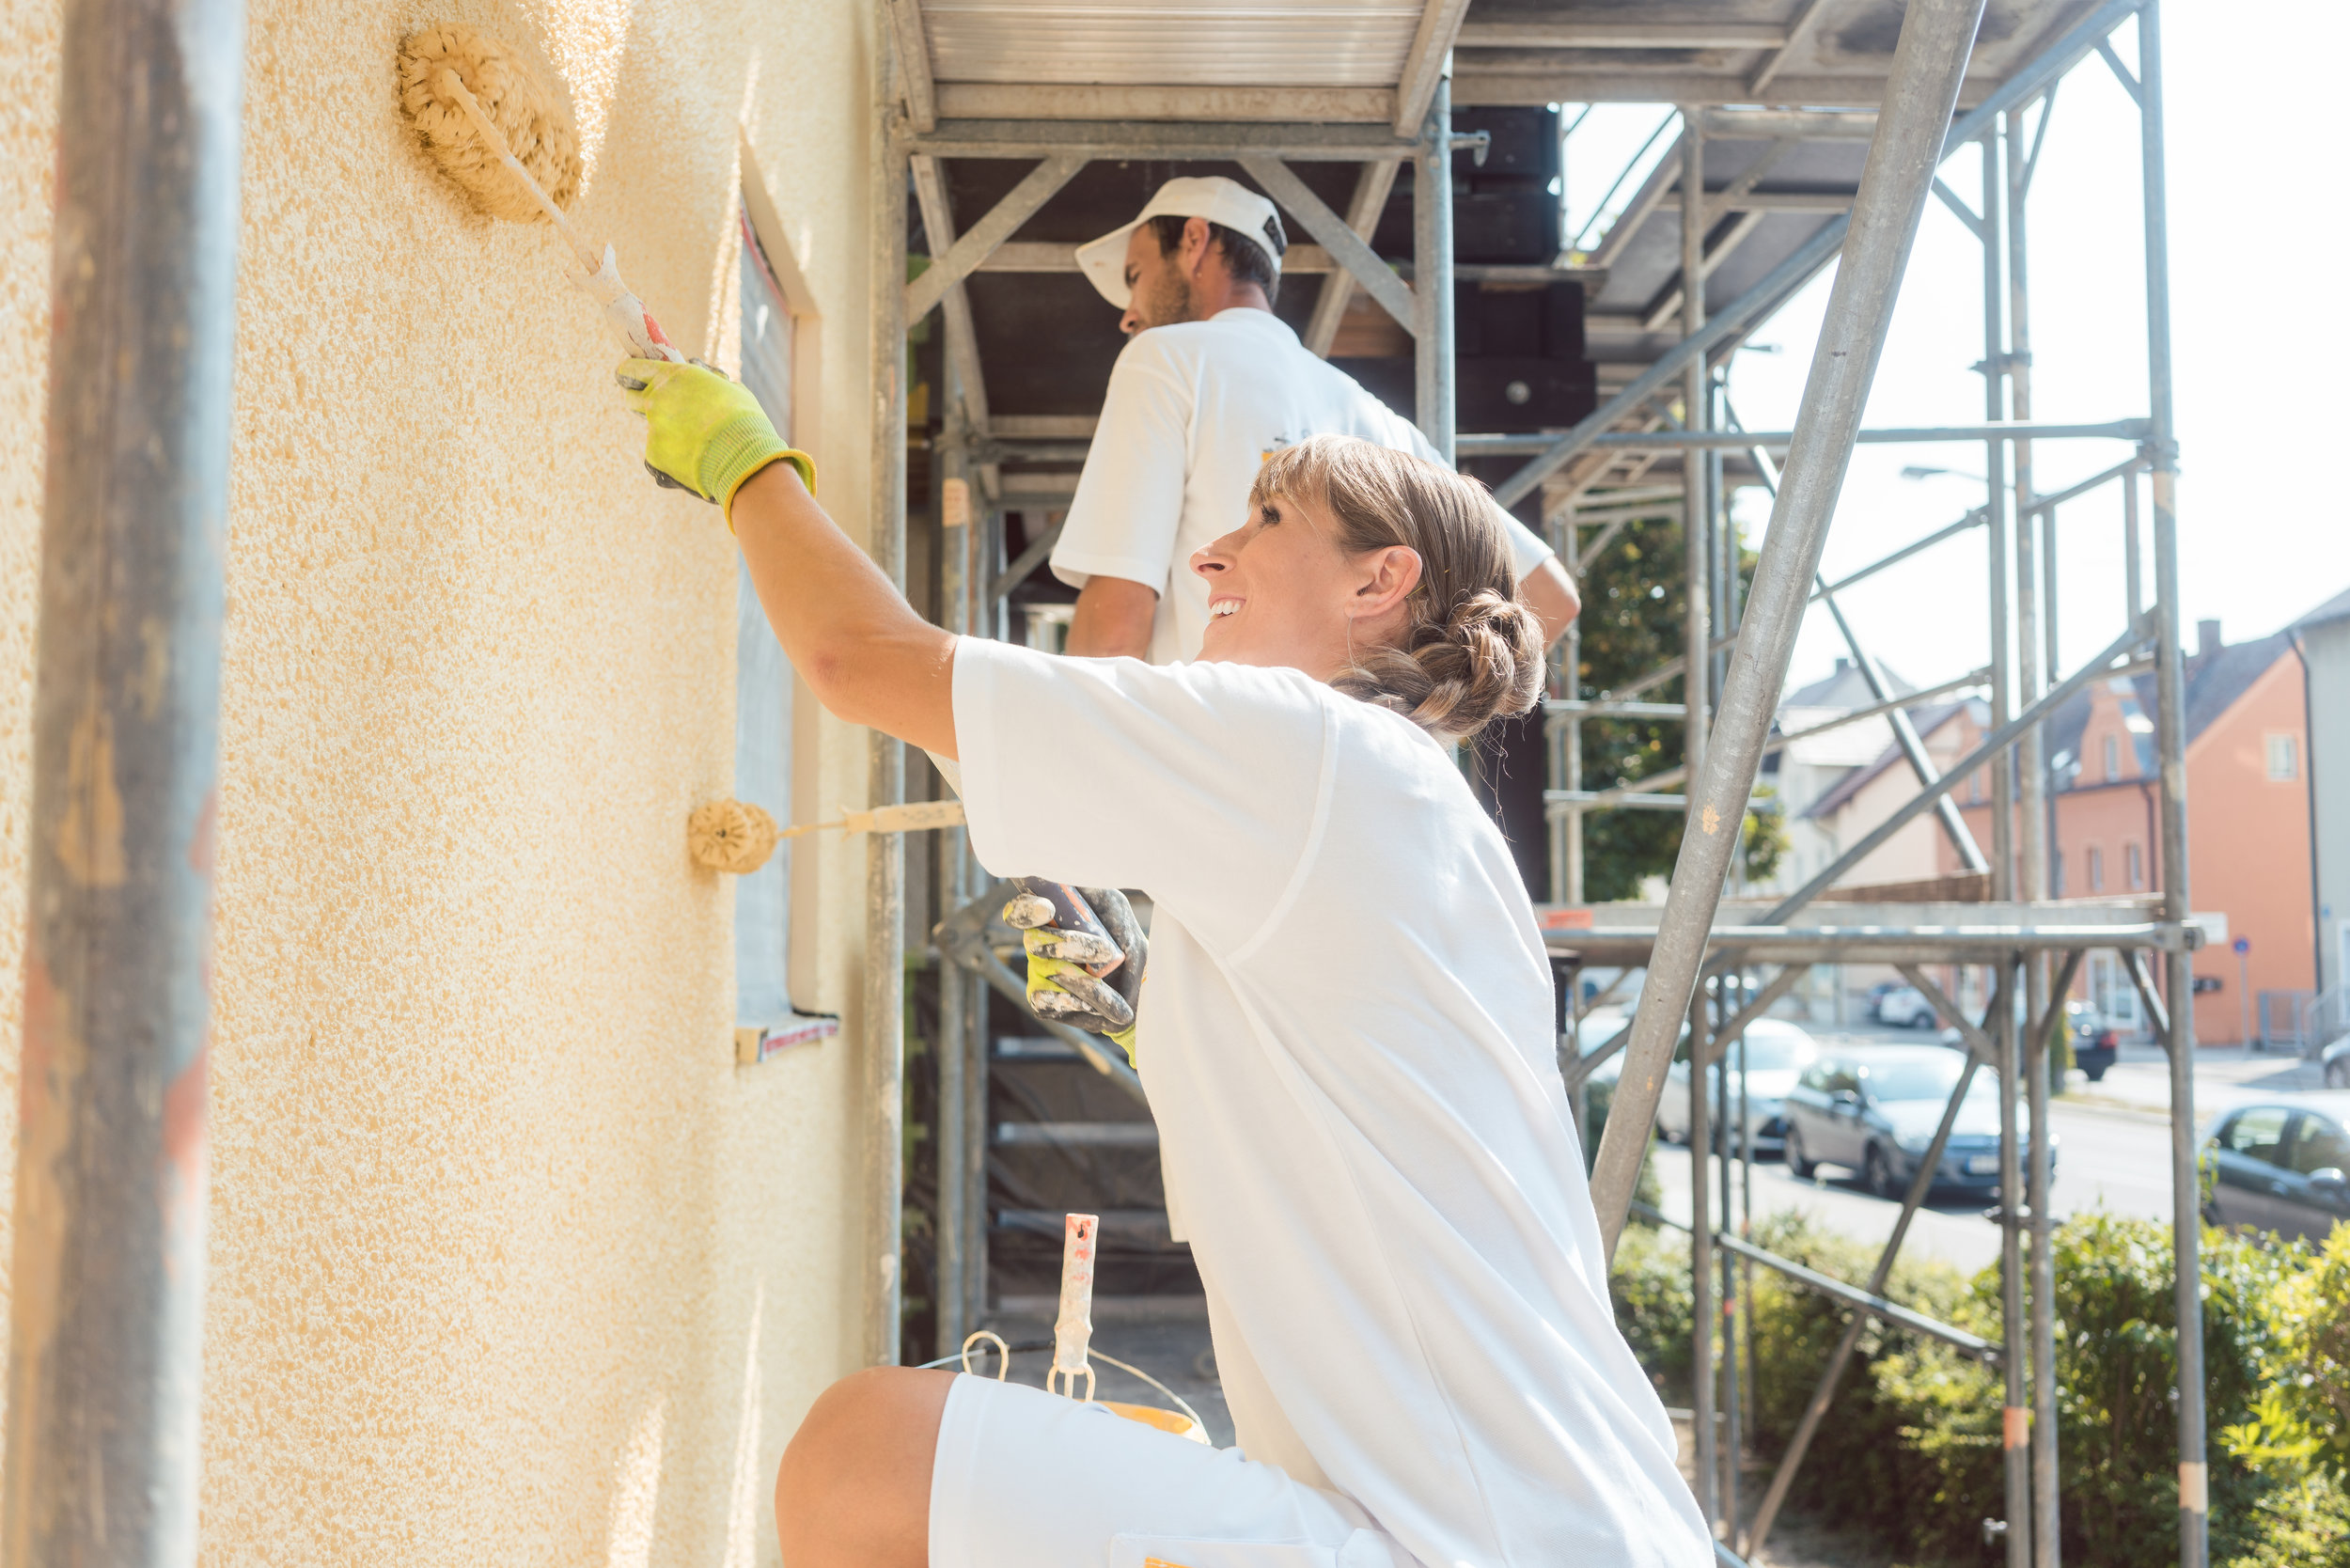 Female and male house painters on scaffolding painting a building.